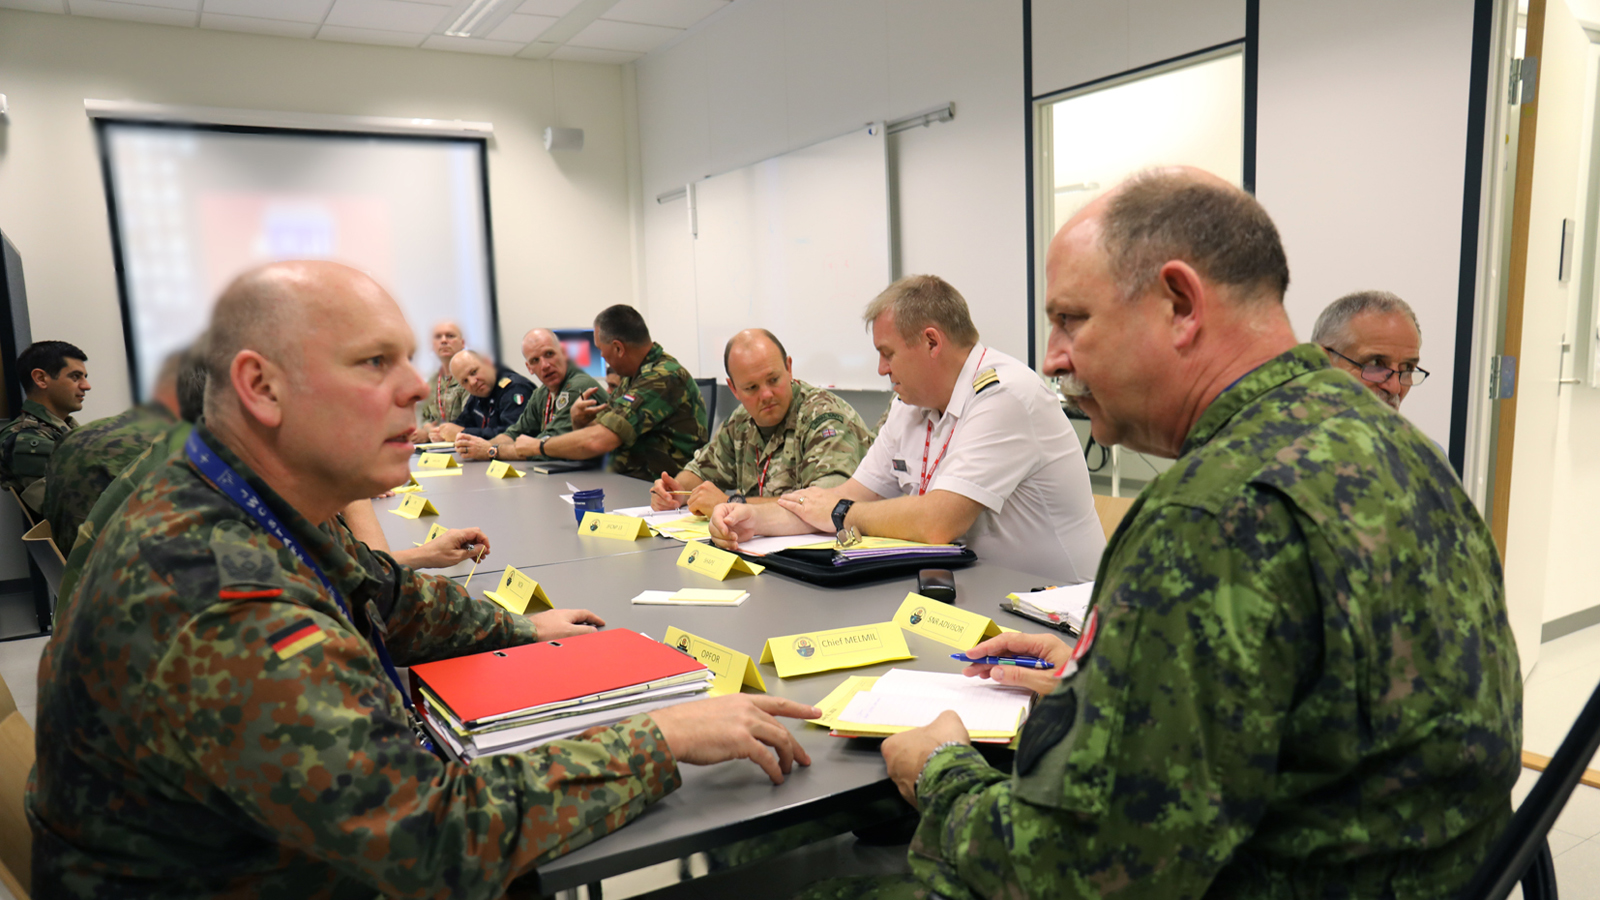 JWC conducts TRIDENT JUNCTURE 2018 MEL/MIL Scripting Workshop: Synchronization is the key to success